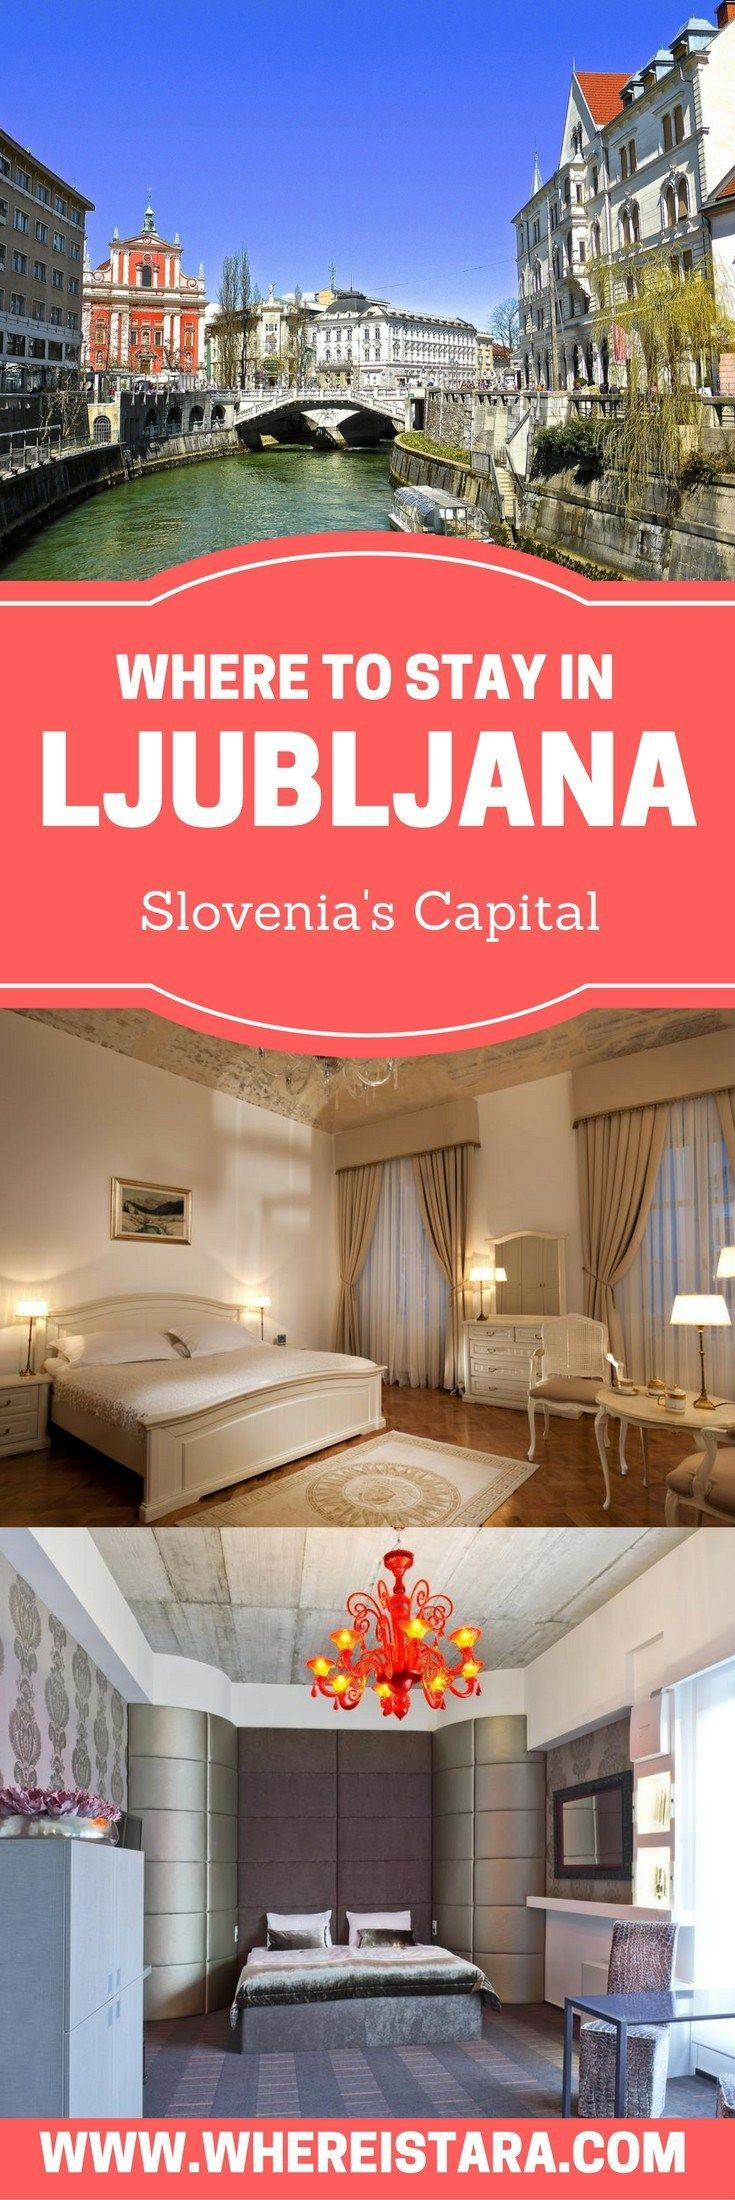 Where To Stay In Ljubljana Slovenia Hotels And Apartments From Boutique Spa